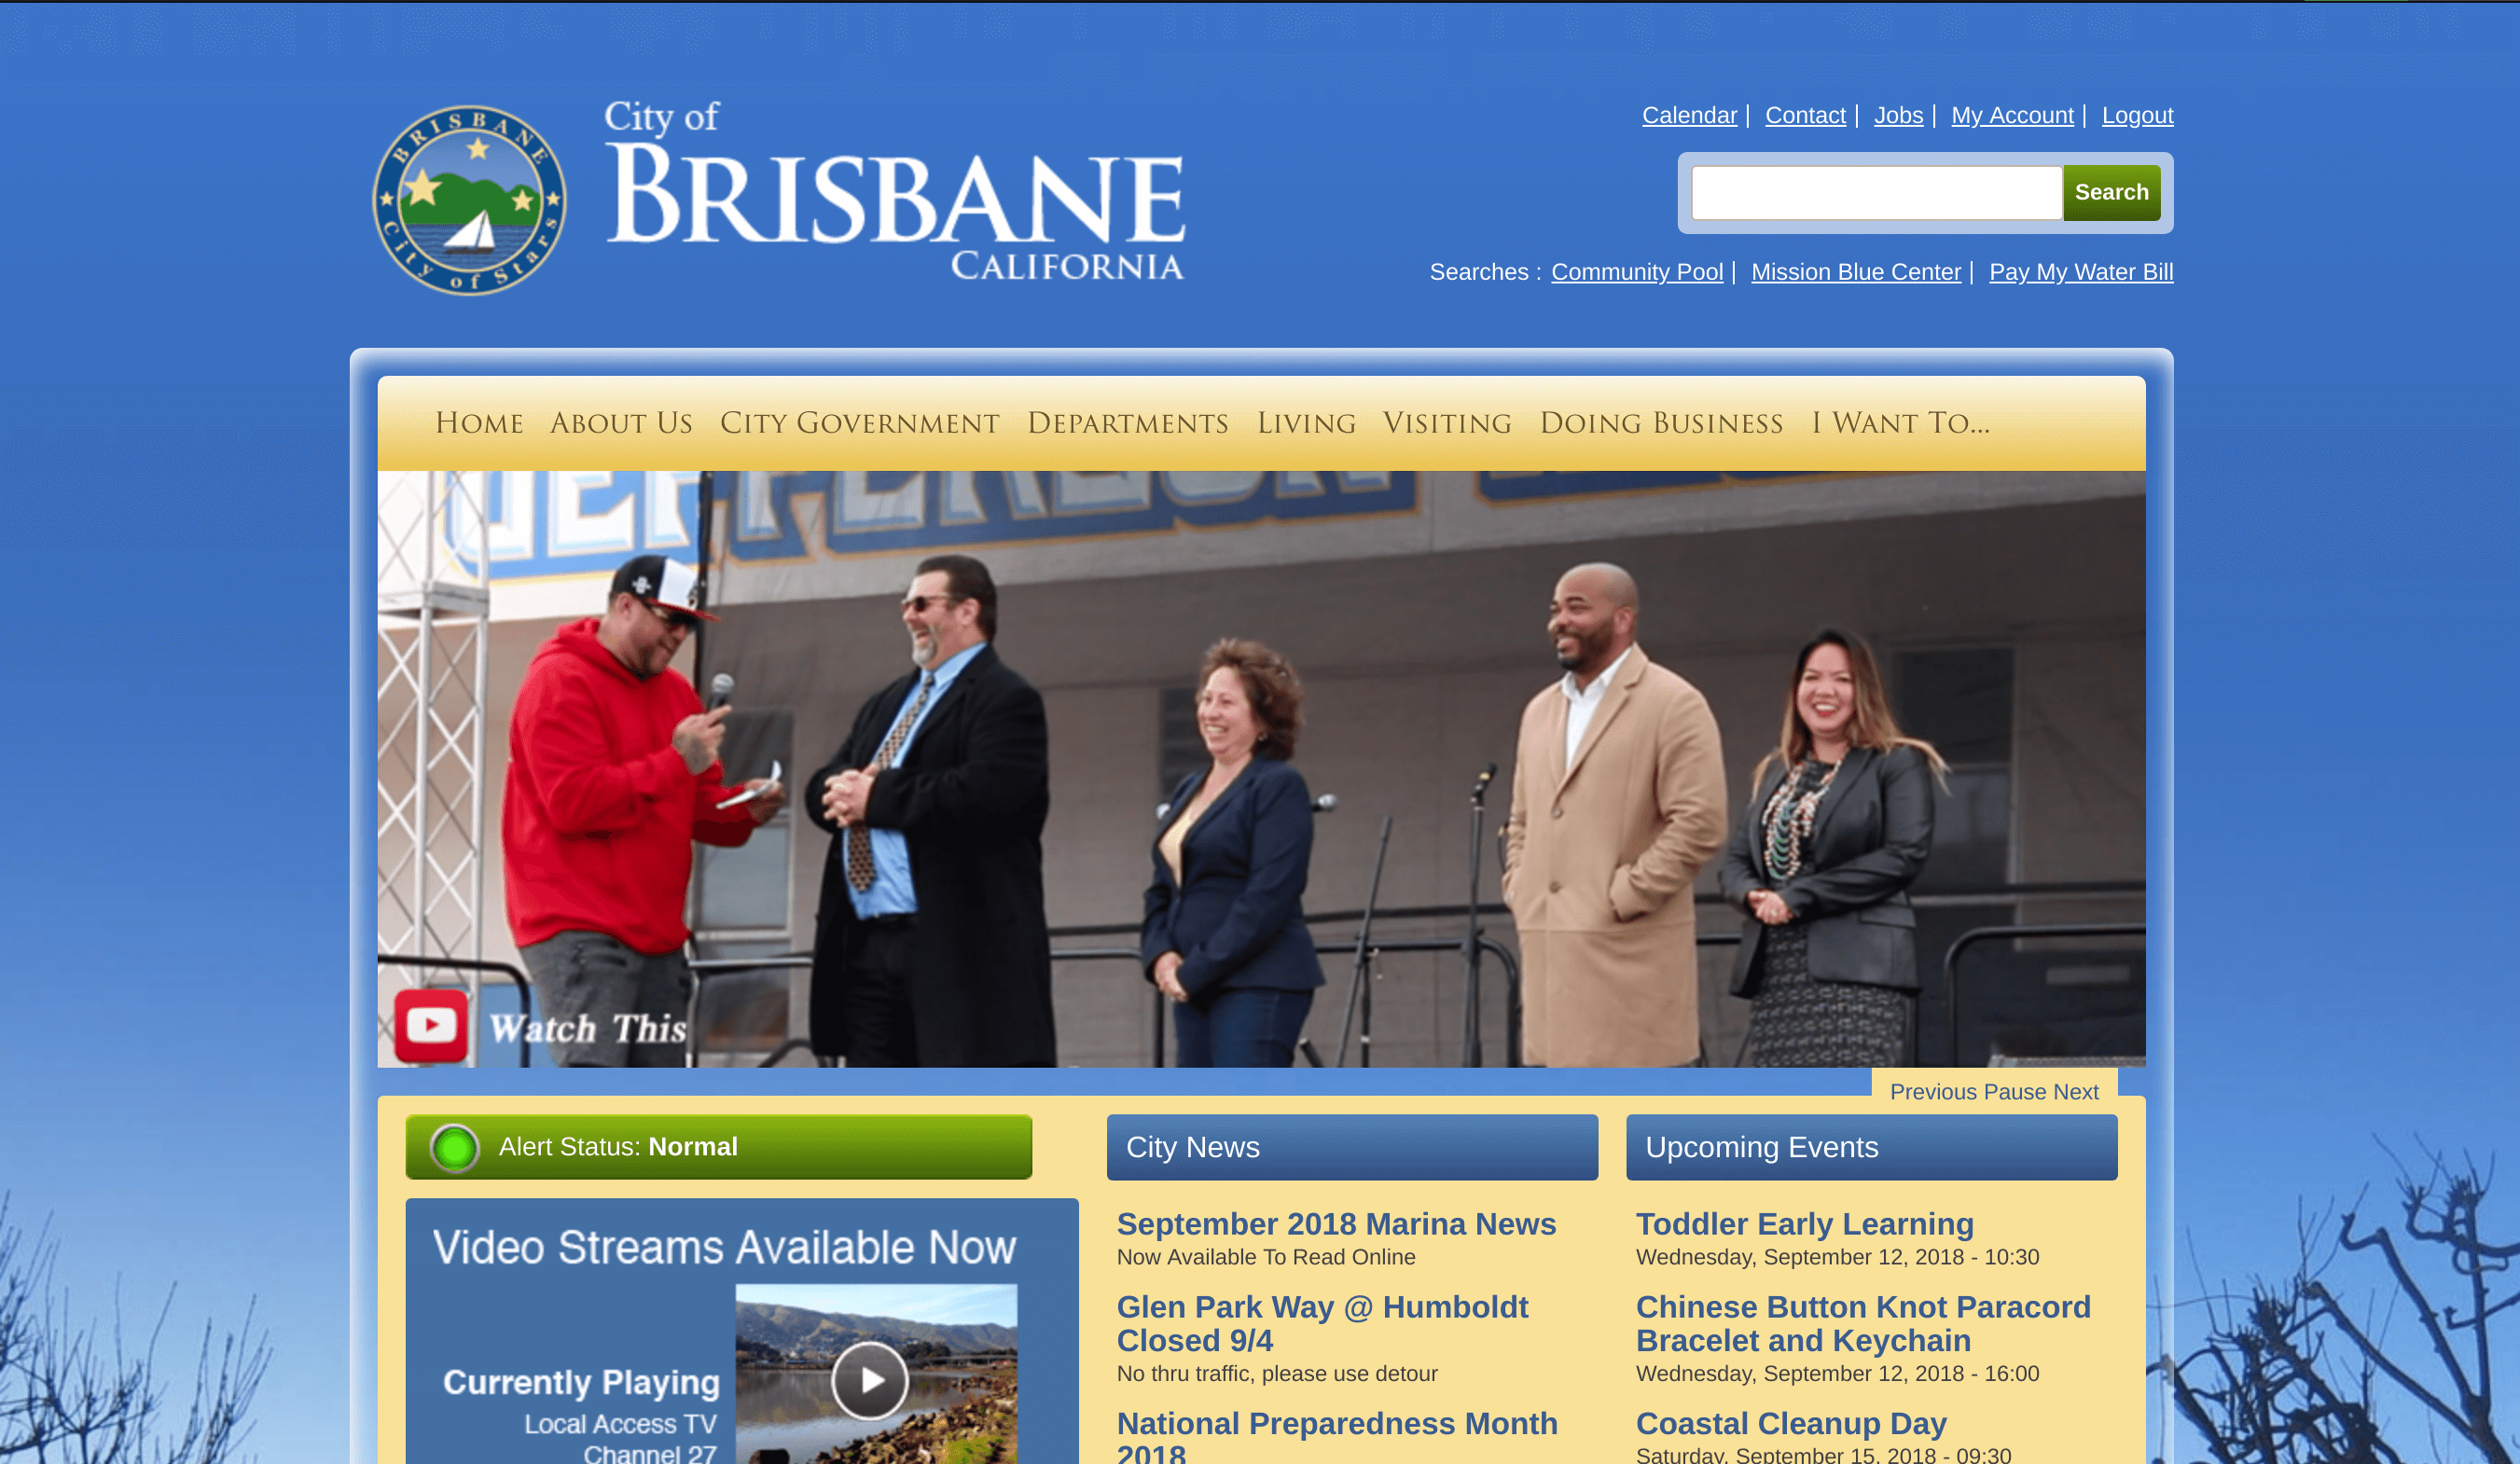 City of Brisbane front page